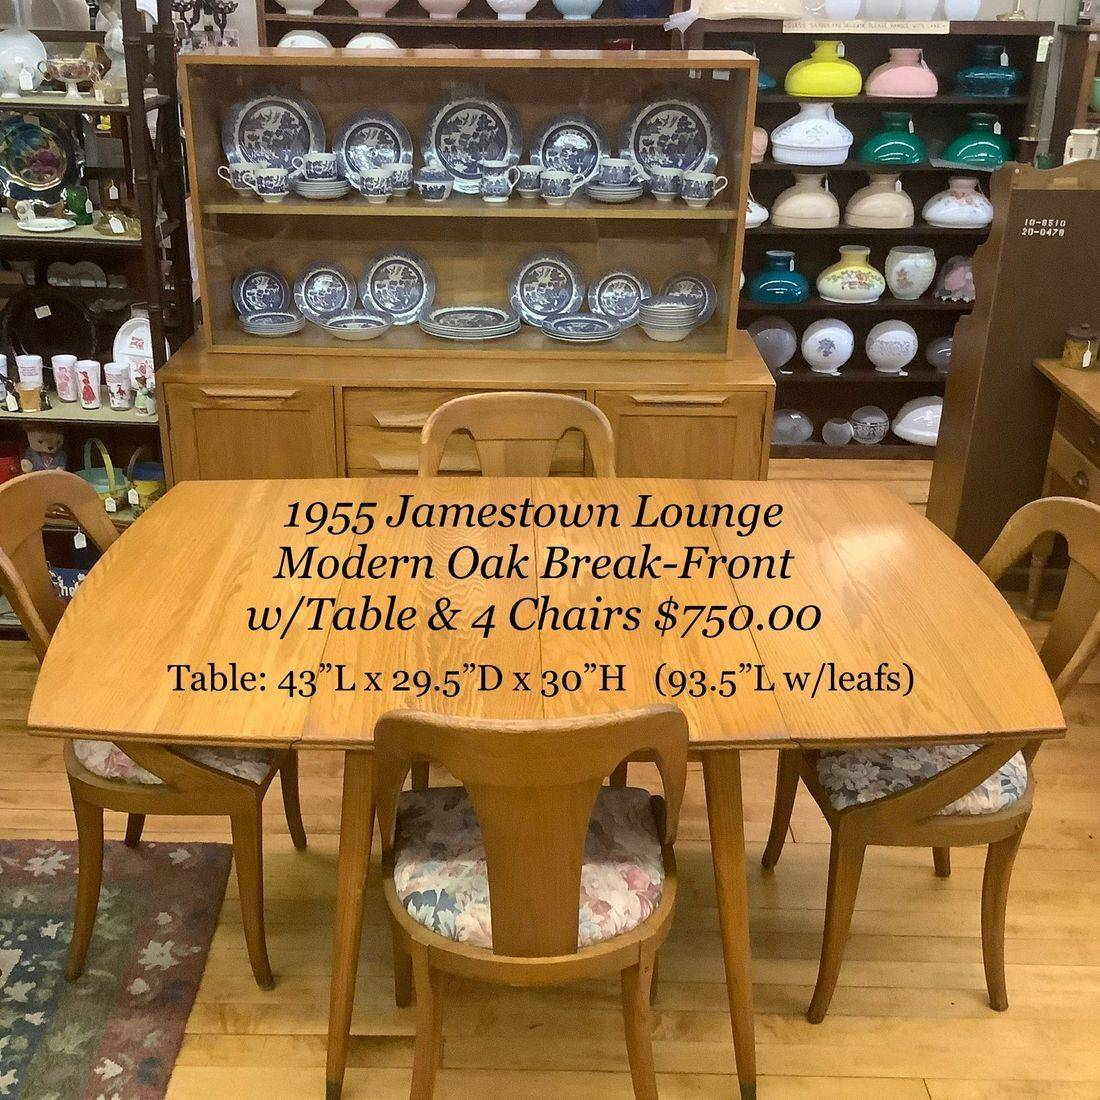 "1955 Jamestown Lounge Modern Oak Break front and Dining Table w/4 Chairs, 3-10"" Leafs and Pads   $750.00"